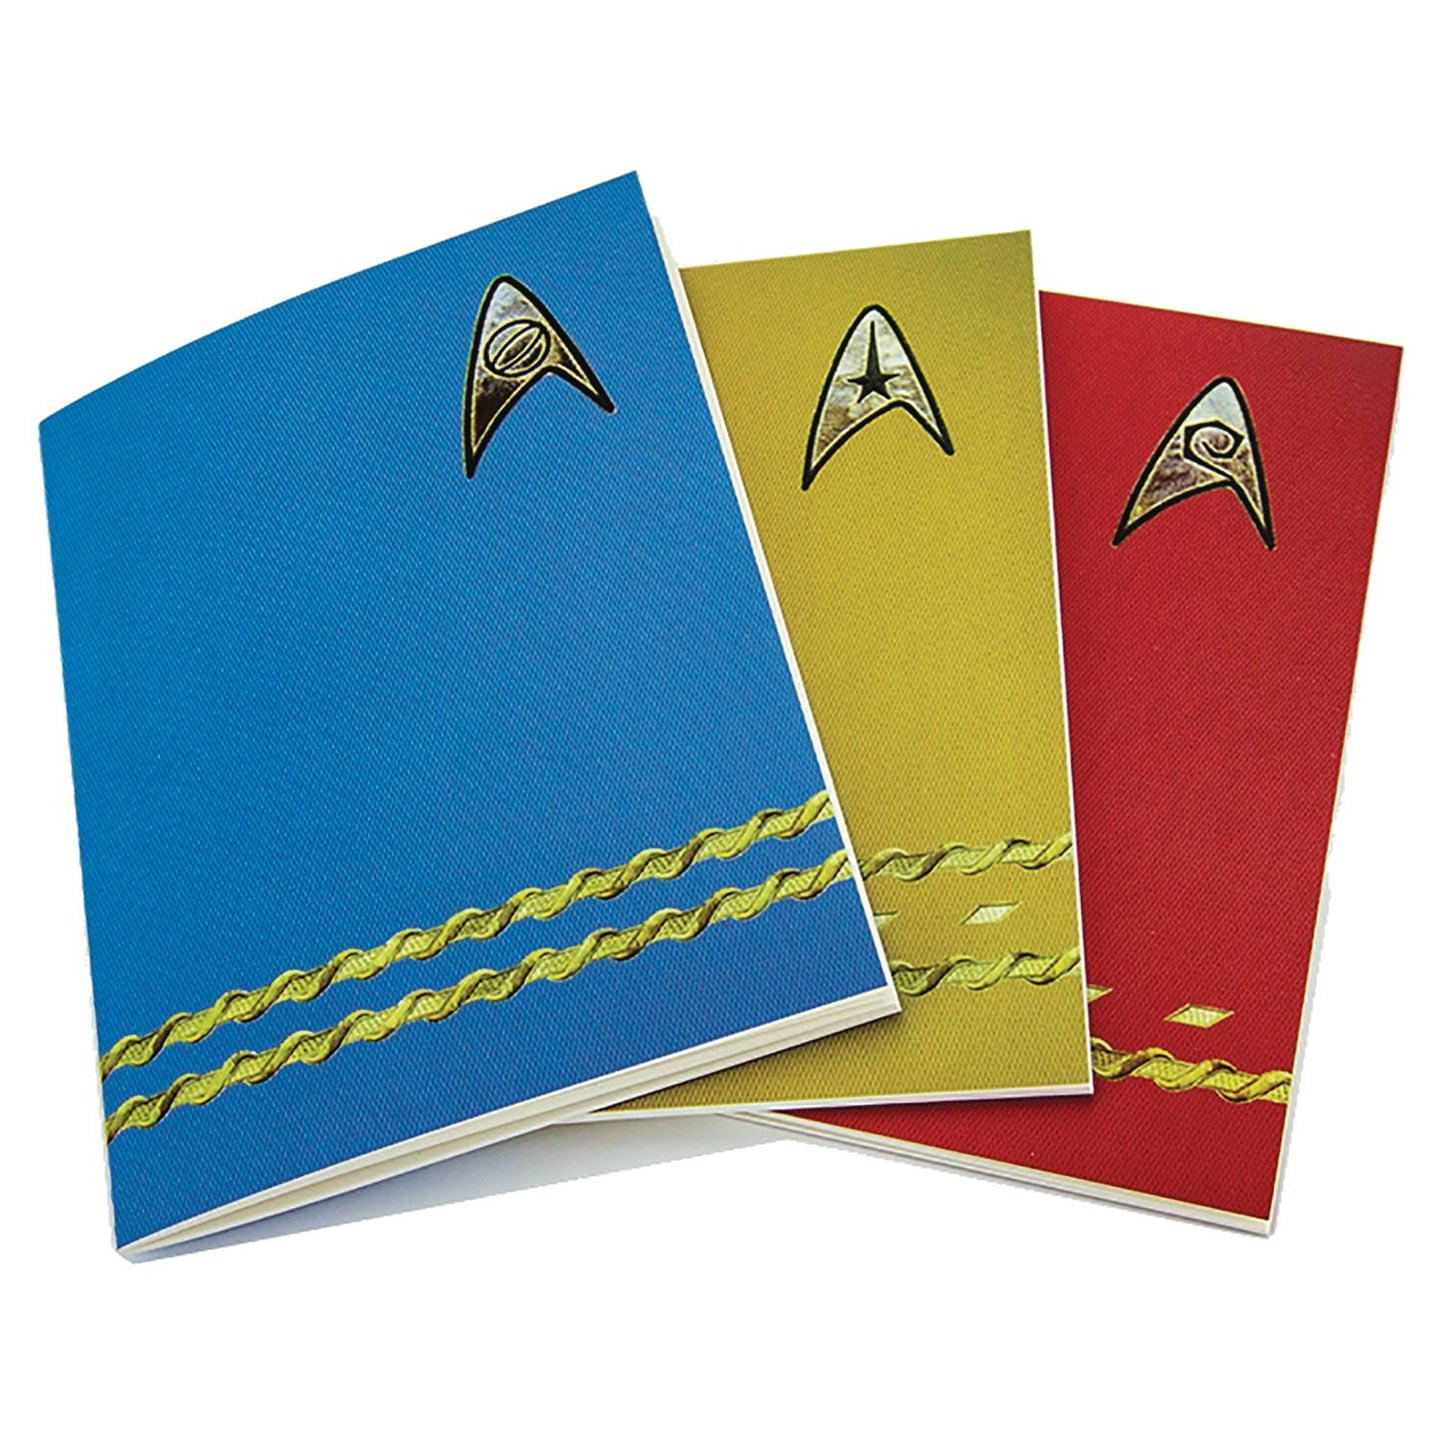 Star Trek The Original Series Softcover Journal 3 Pack